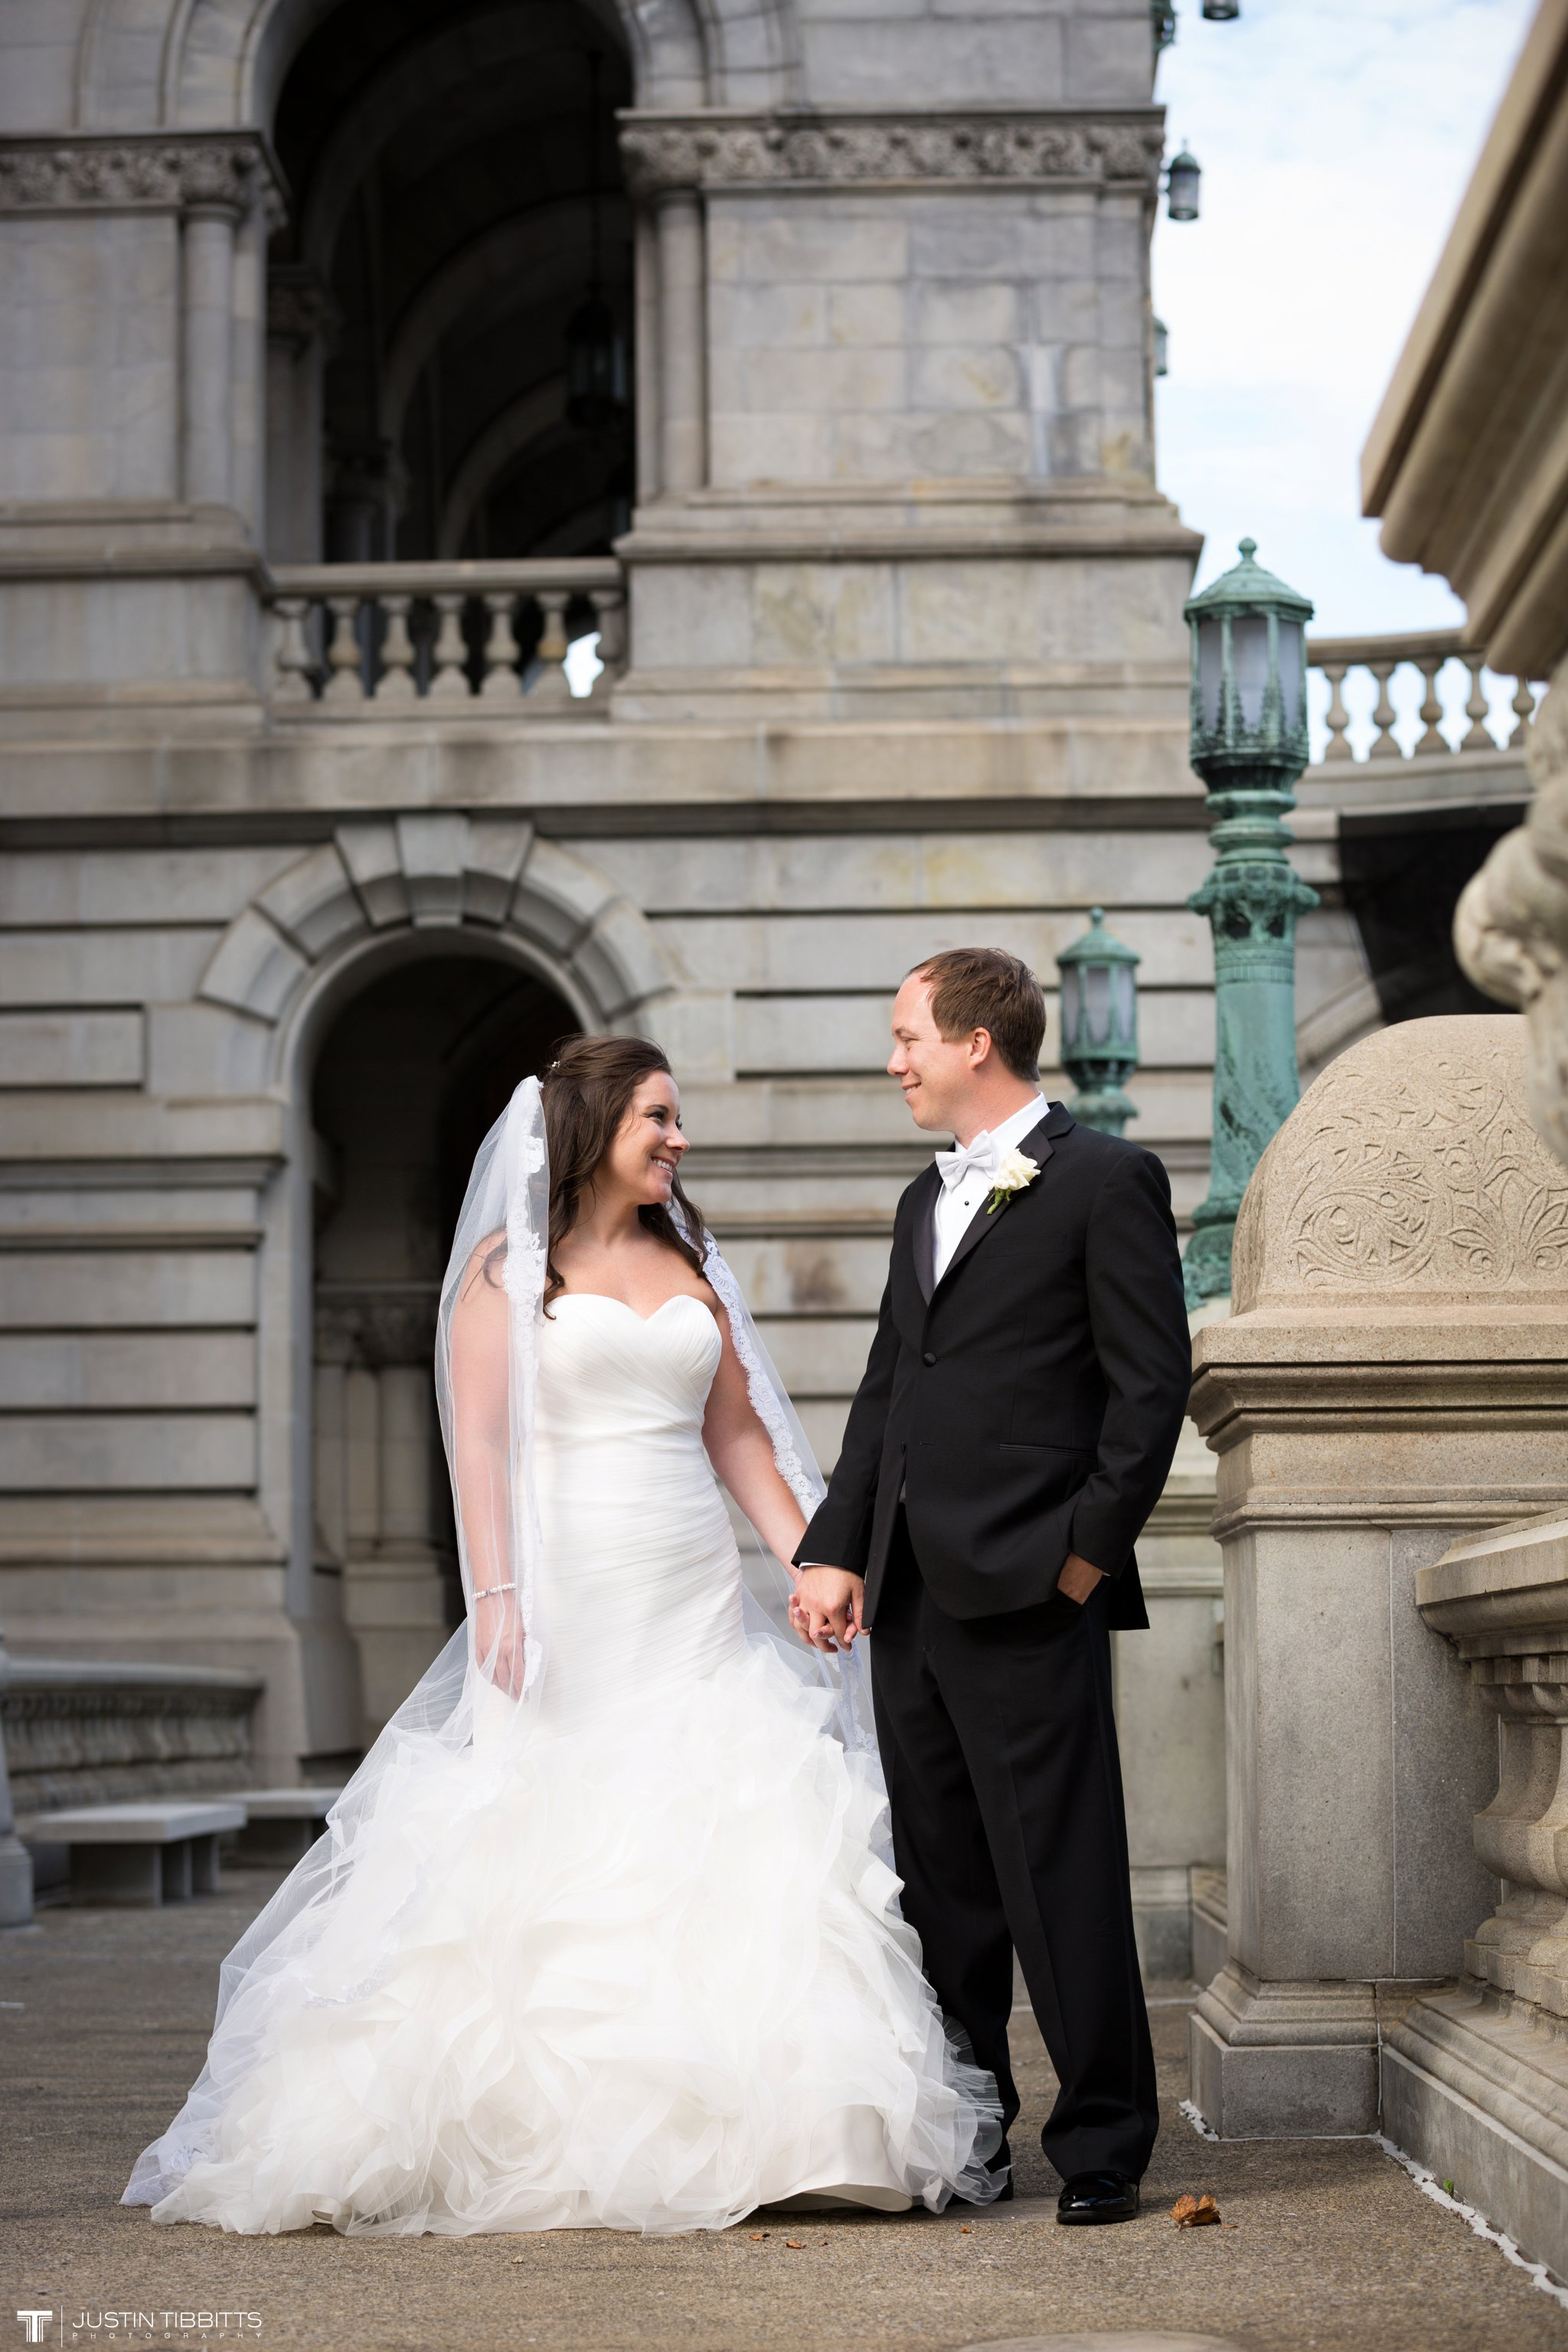 The State Room Albany, NY Wedding with Christian and Meg by Justin Tibbitts Photography_0094